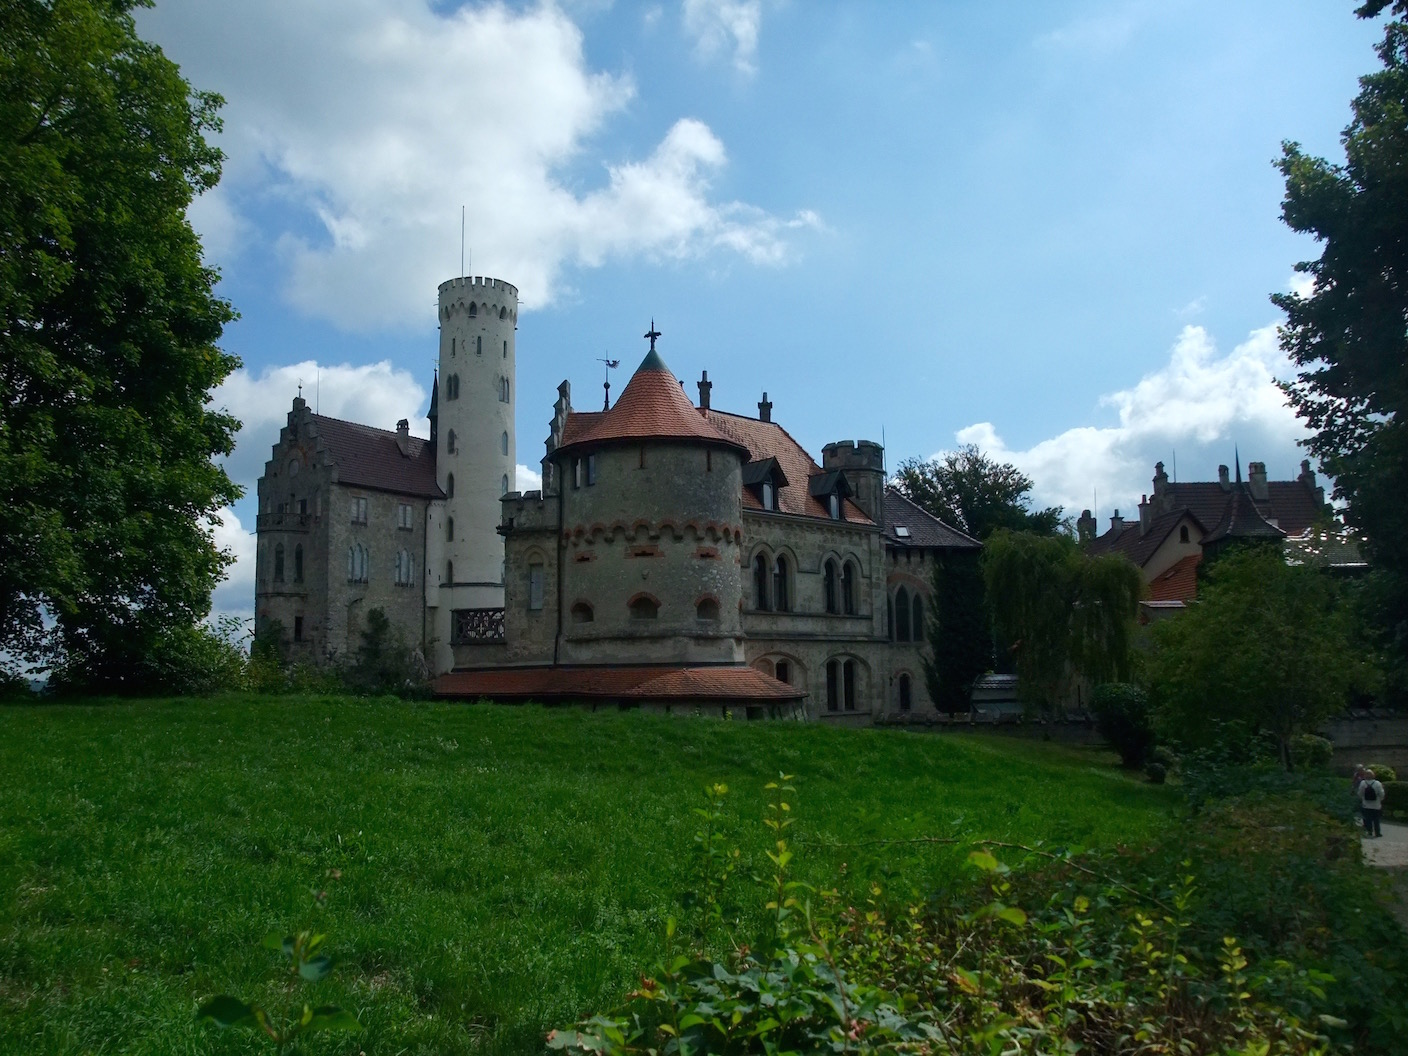 The outer buildings of the castle